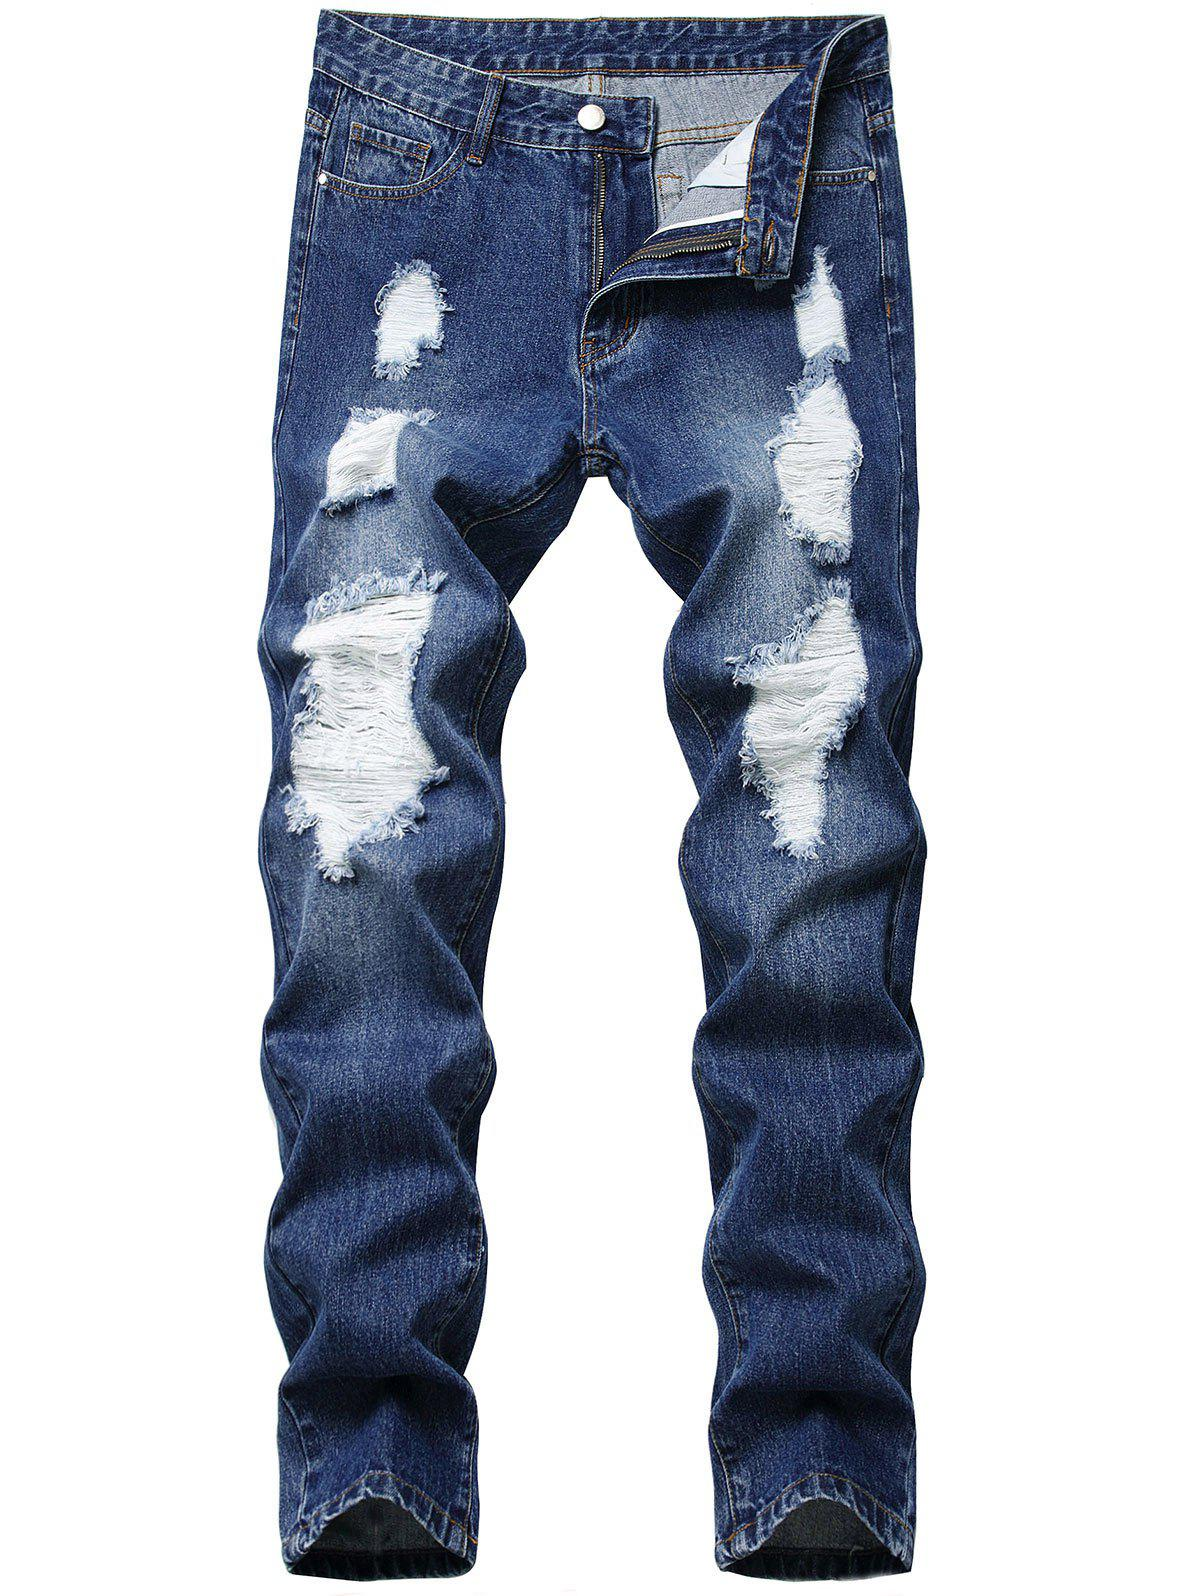 Straight Leg Distressed Zipper Fly Jeans - BLUE 38